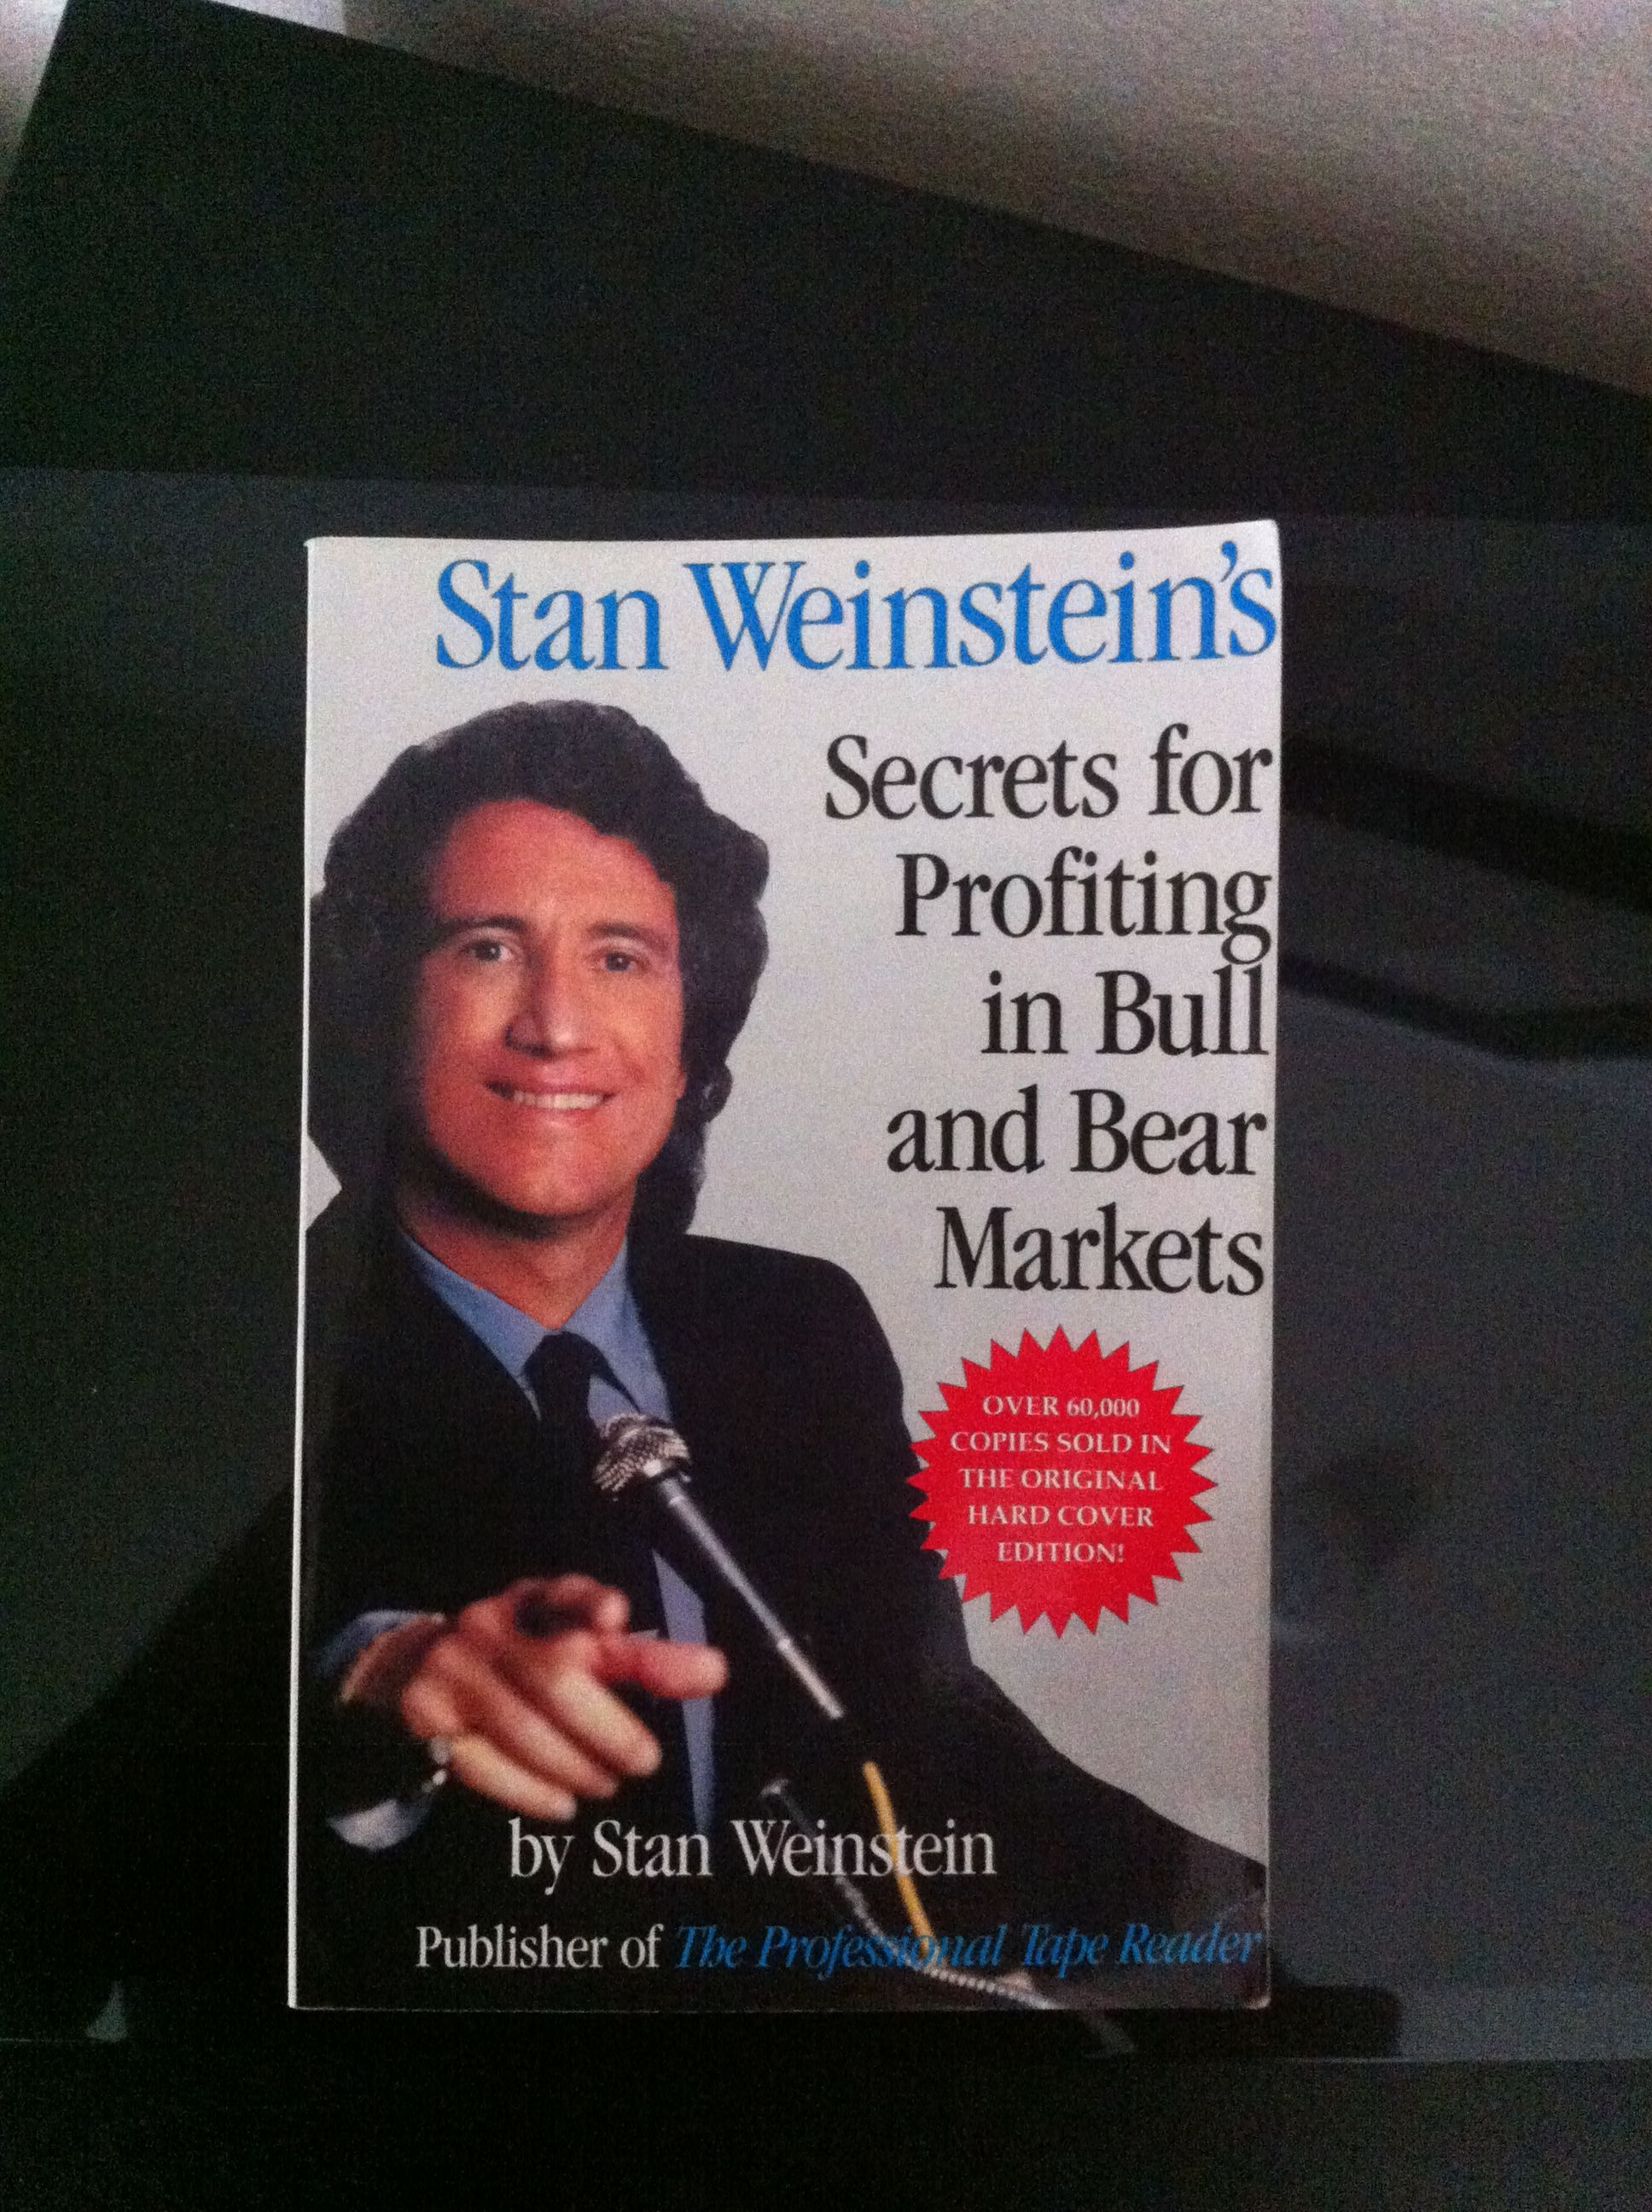 Just finished reading this book about the Stock Market - #stocks #money #bull #bear #profit #shares #companies